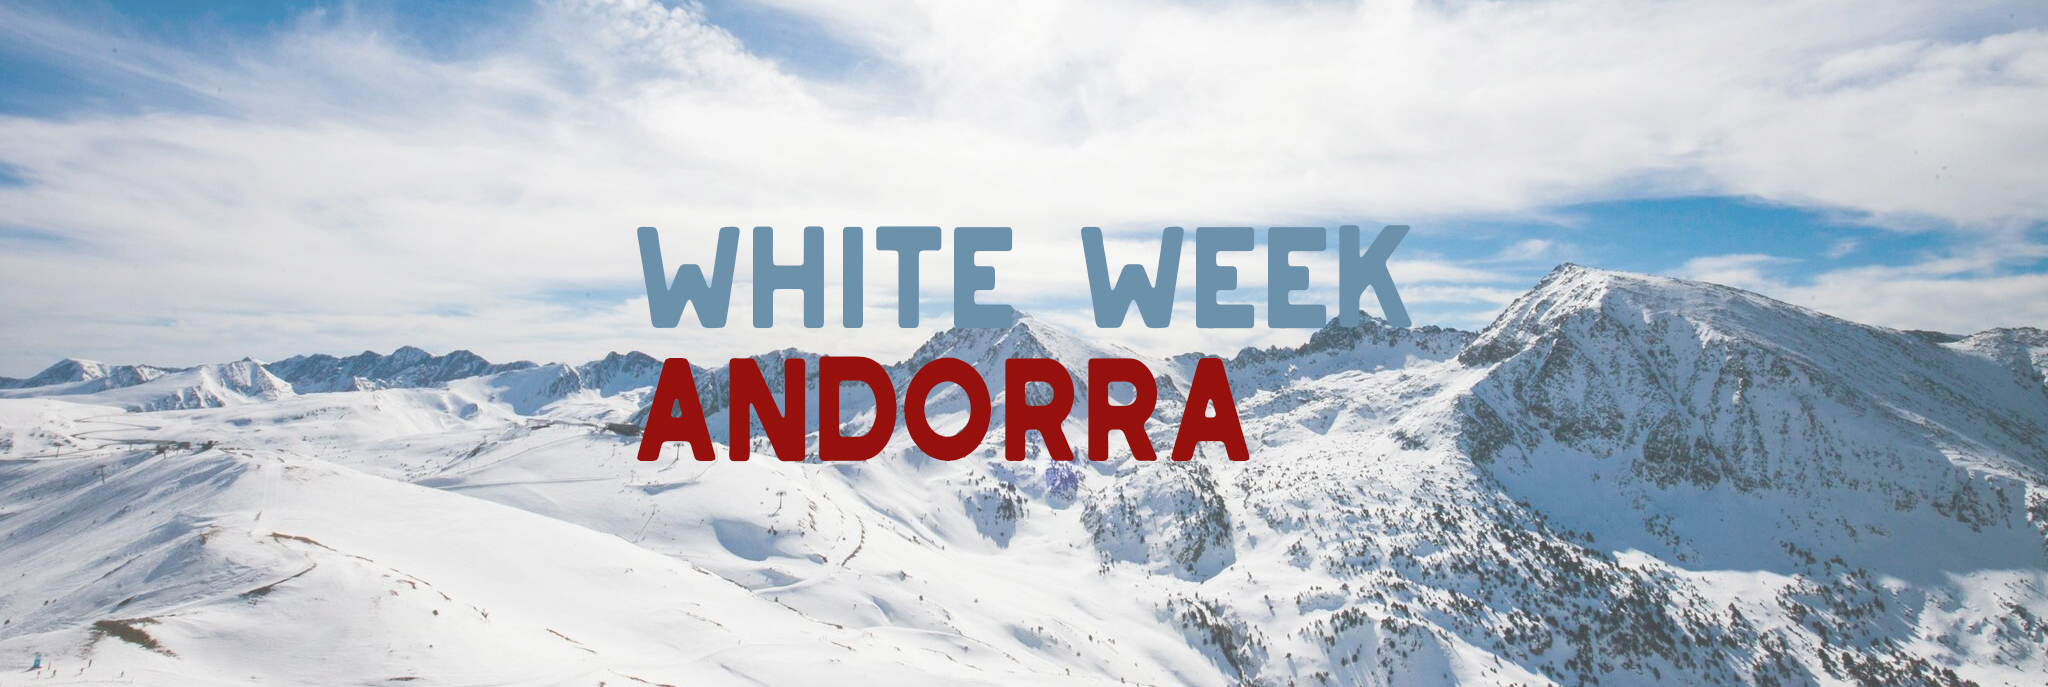 white-week-andorra